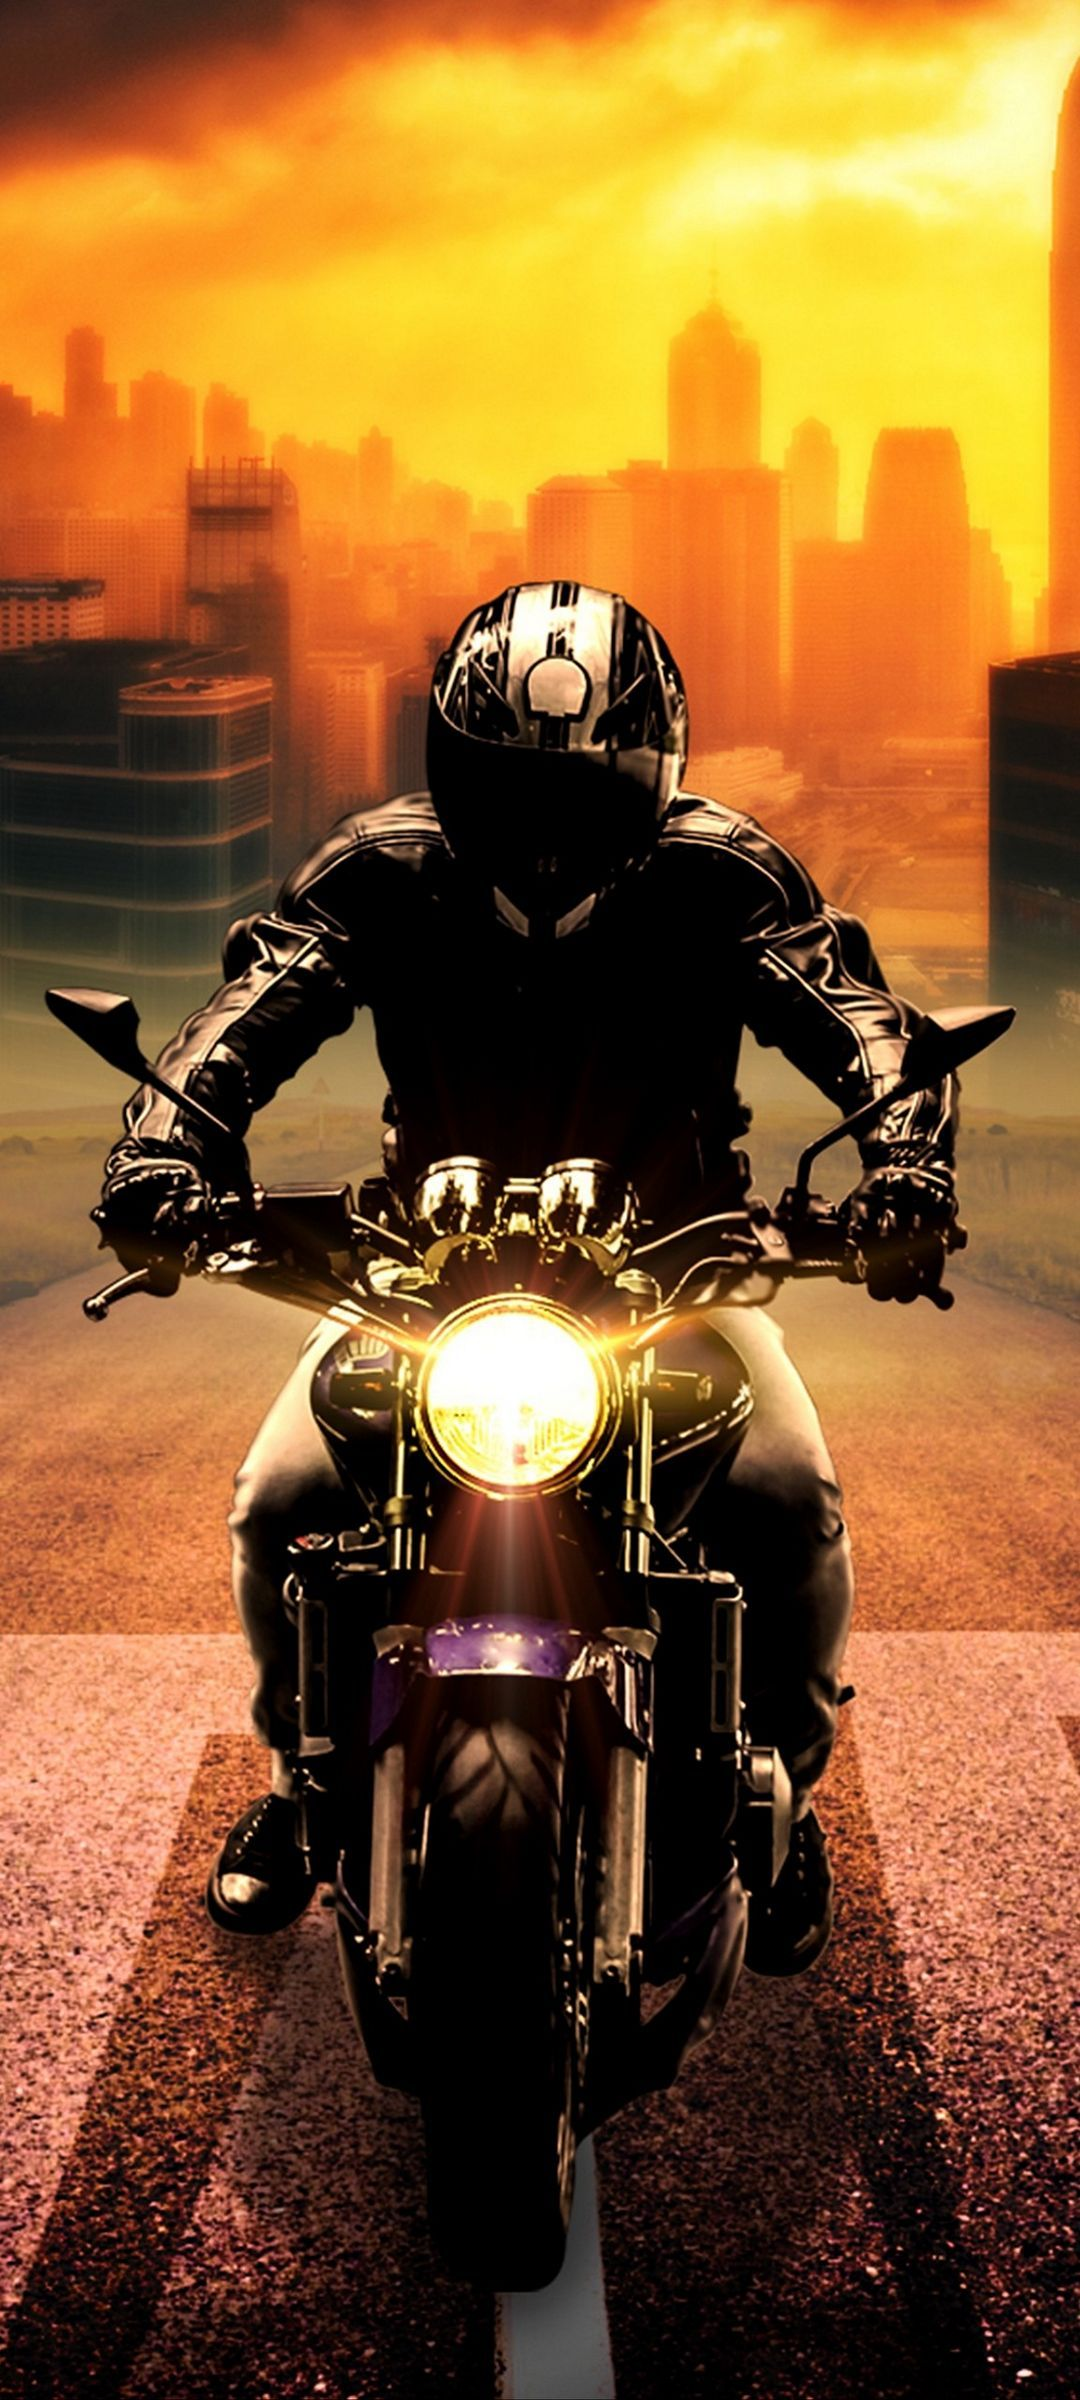 Samsung Galaxy A90 Wallpapers Motorcycle Wallpaper Motorcycle Wallpaper Iphone Neon